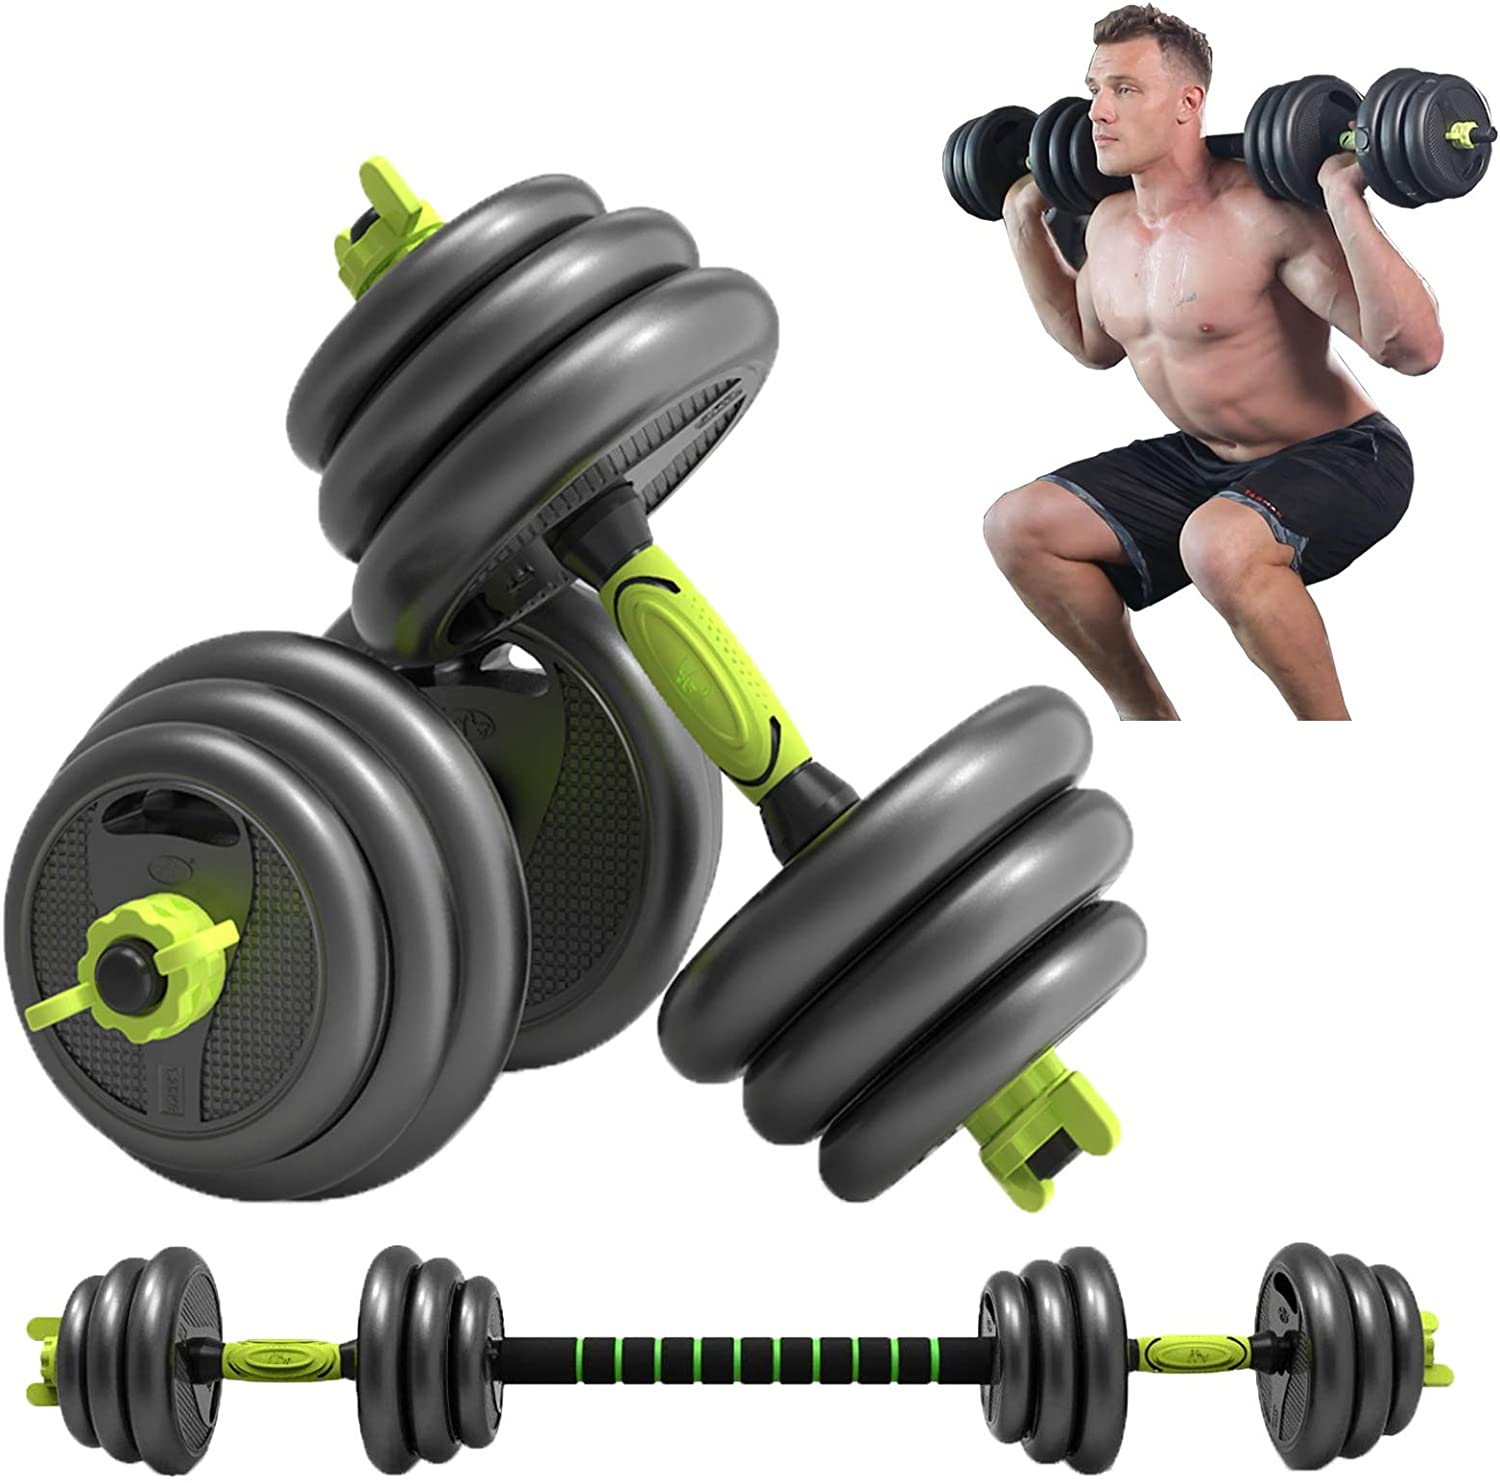 MZQZM Adjustable Dumbbells Set, 44Lbs Dumbbells(2 Pieces), Lightweight Barbell, Heavy Duty Barbell 3 in 1 Set, Home Training Essential Gym Equipment